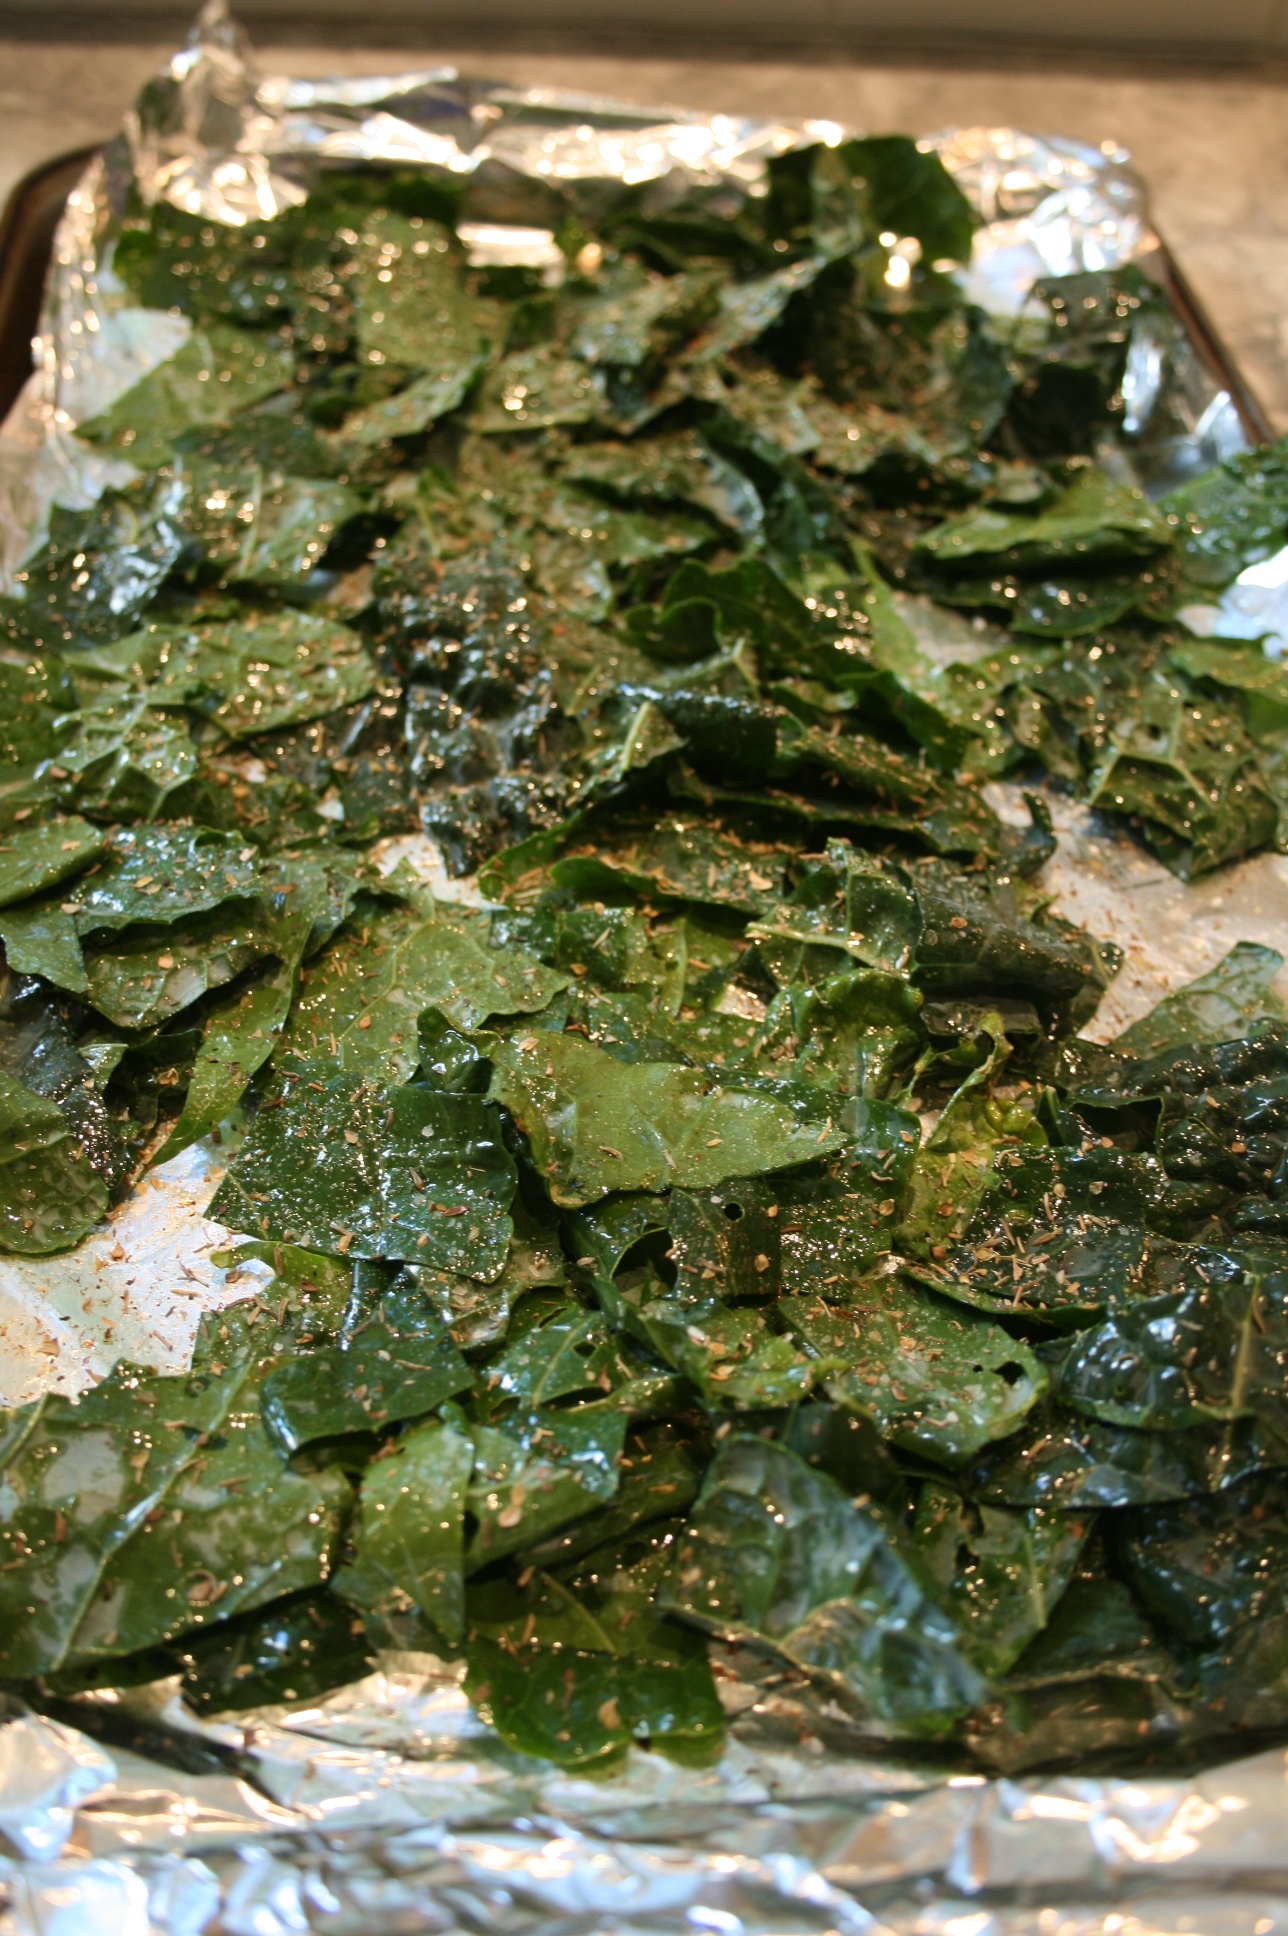 Baking Kale Chips